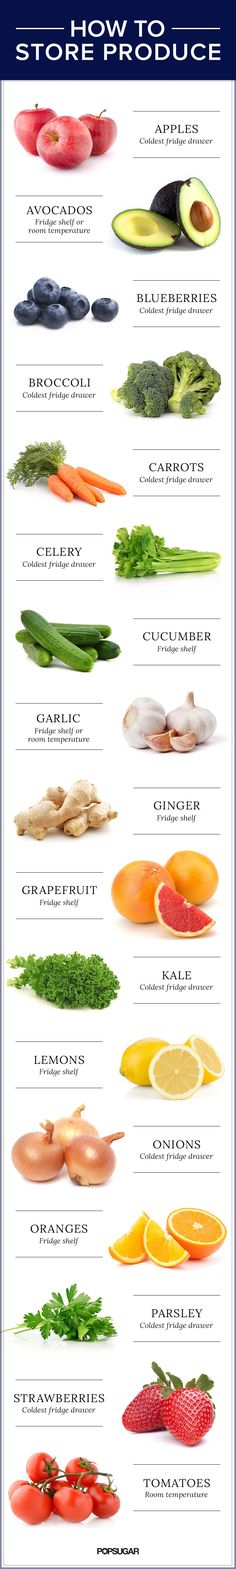 A simple chart to help you remember where to store fruits and vegetables in the fridge